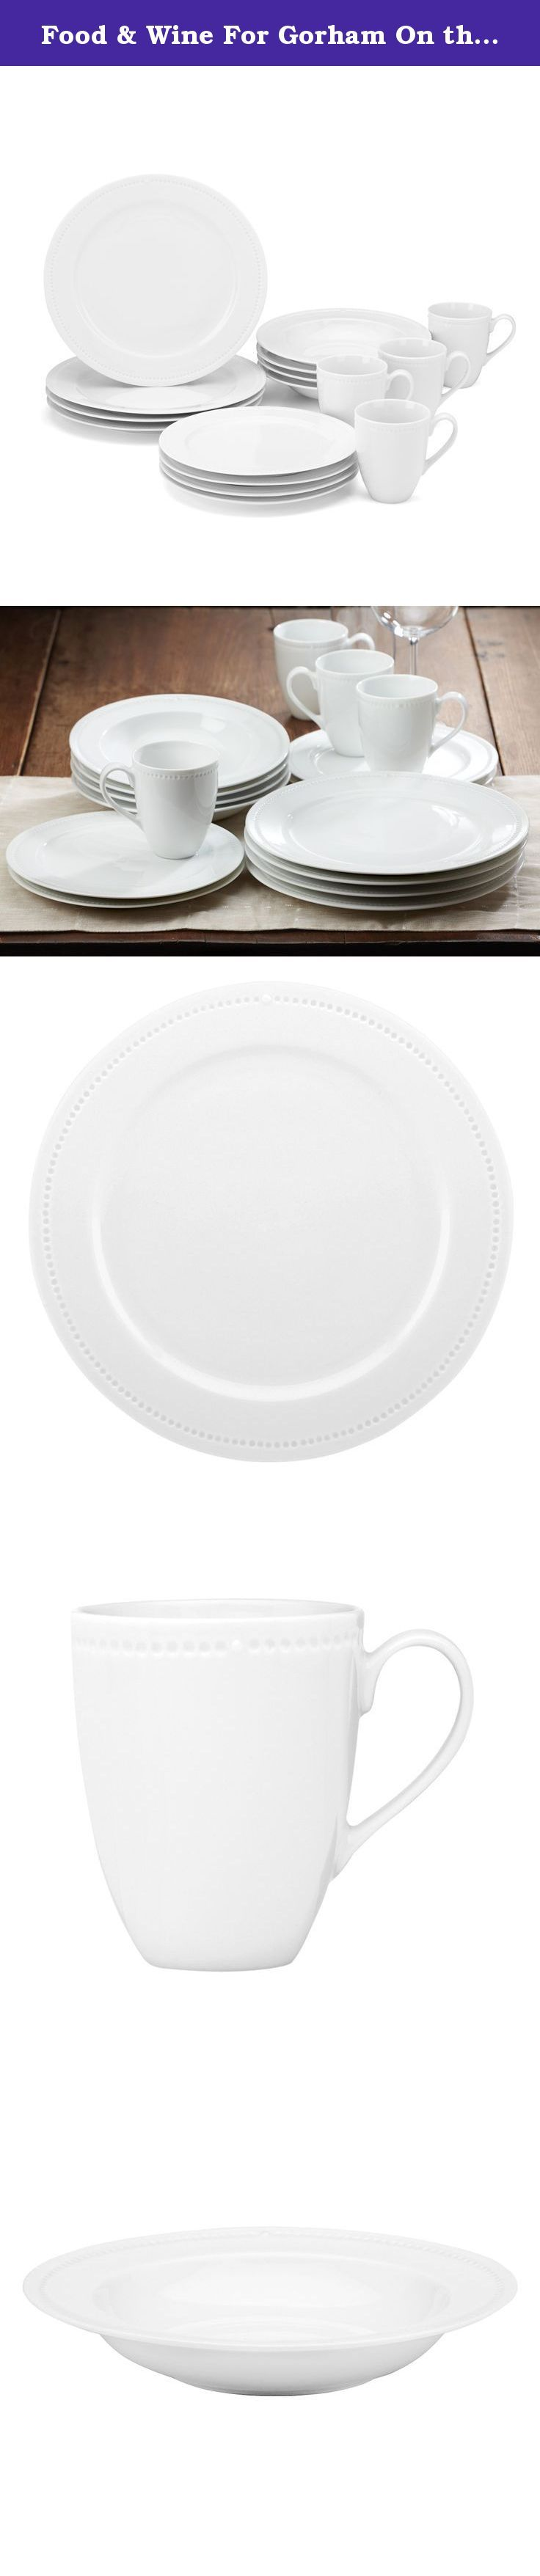 """Food & Wine For Gorham On the Dot 16-Piece Dinnerware Set. Plating food is an important aspect of a chef's artistry. Thinking of the plate like a clock, chefs assemble food with the top of the plate at 12 o'clock. The raised dot on these simple but elegant plates marks that spot and helps anyone put food on the table worthy of a chef. Crafted of high quality white porcelain. Dishwasher-safe, microwave-safe and oven-safe. Service for four includes four 10.5"""" dinner plates, four 9"""" salad..."""